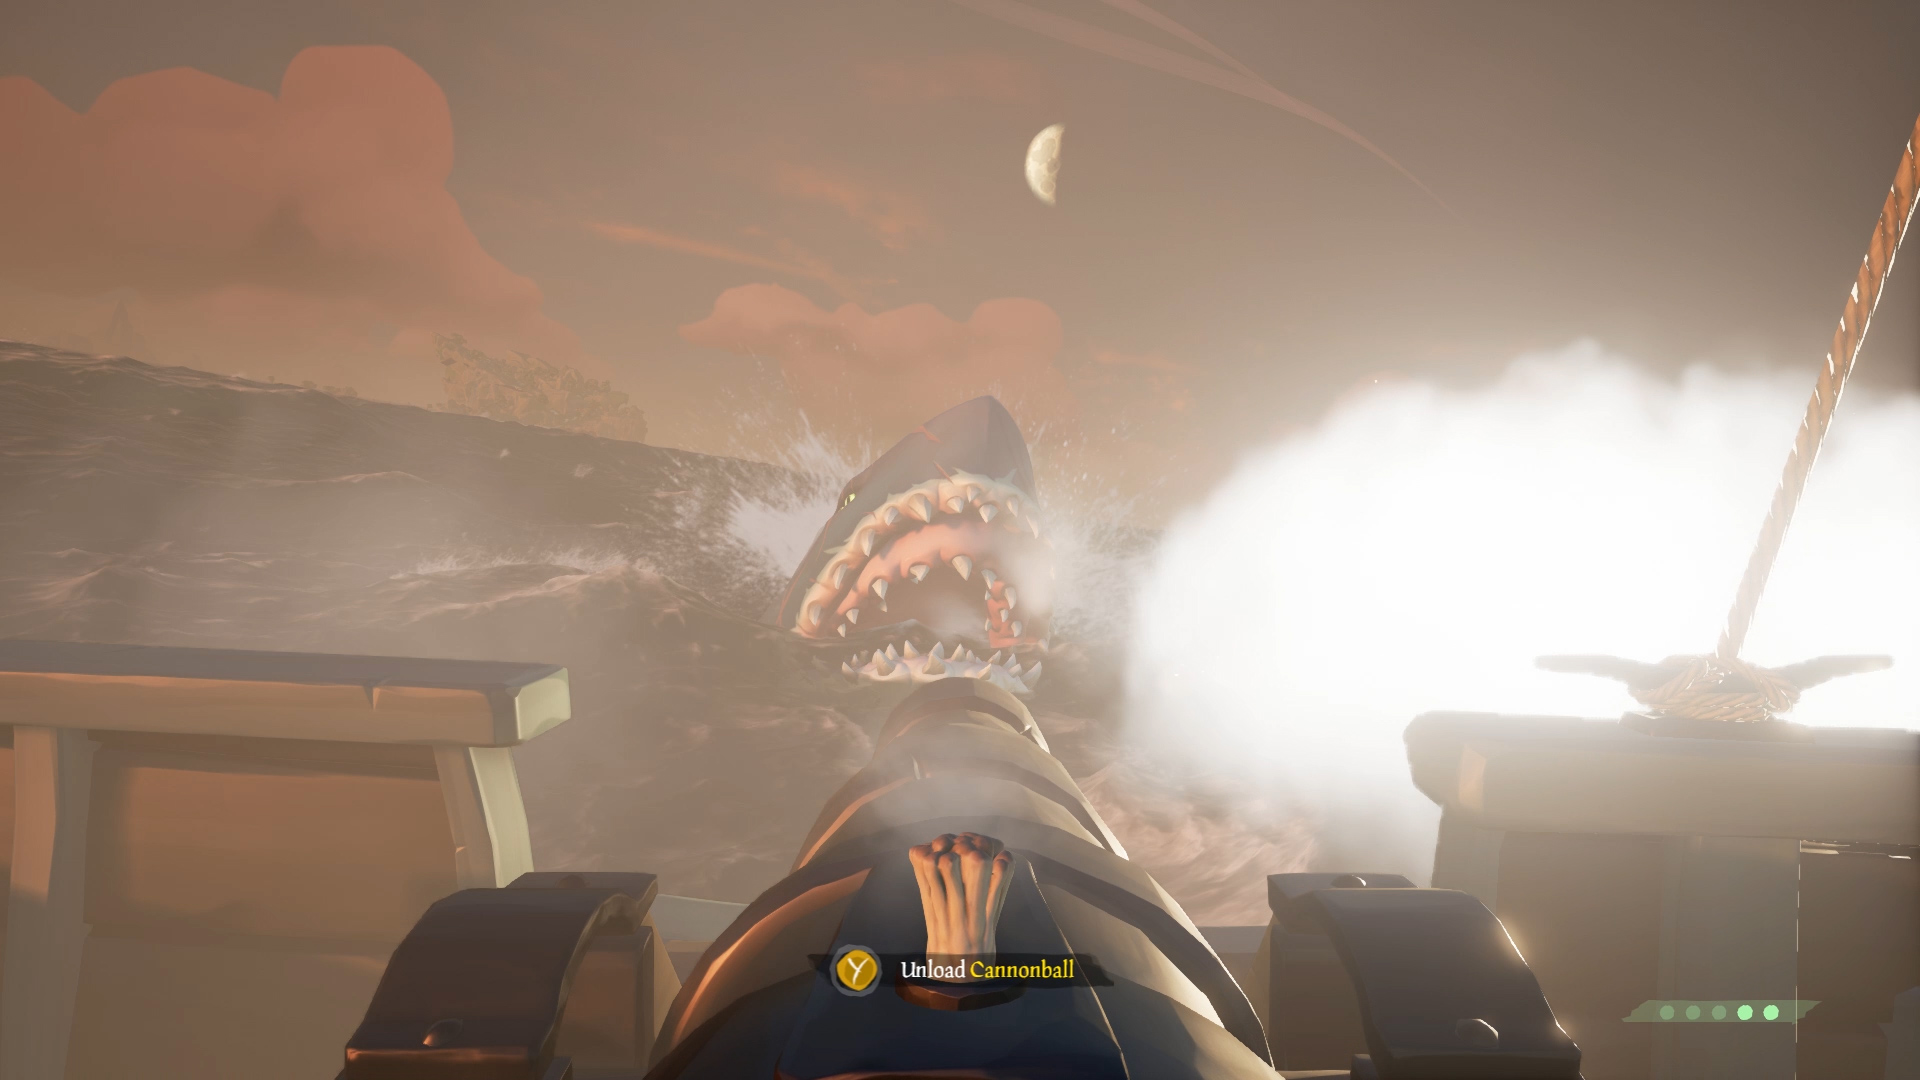 find megalodon hunters of the deep sea of thieves